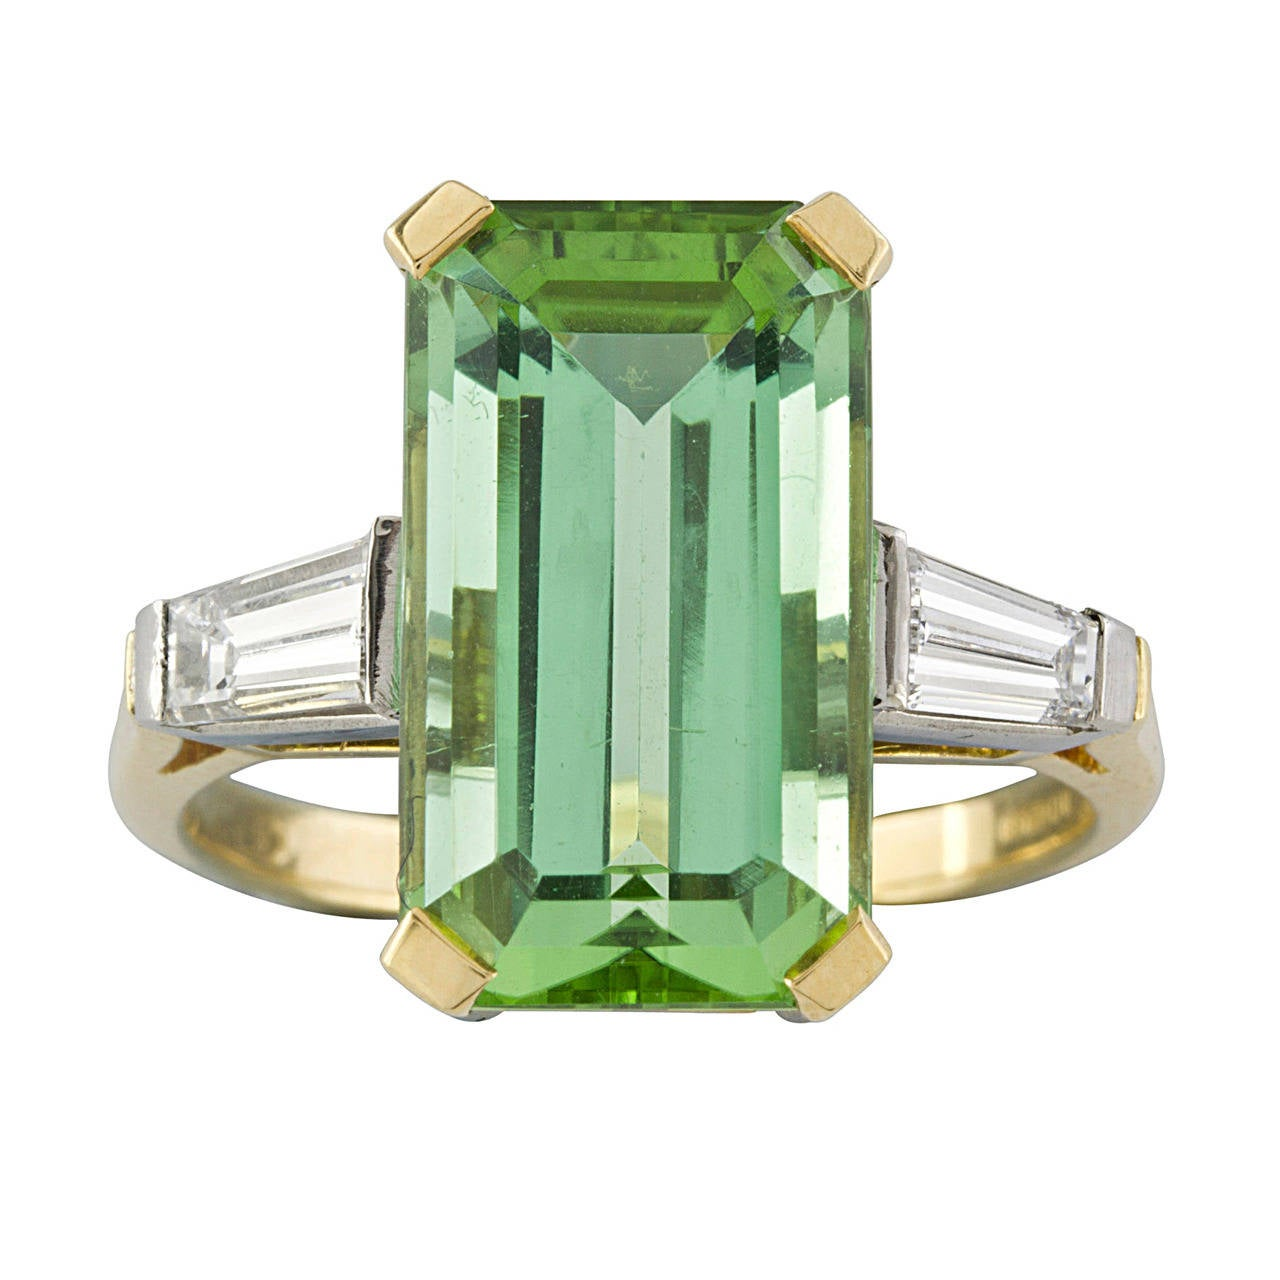 acfj ring engagement diamonds ana cavalheiro tourmaline greentourmaline rings green products with